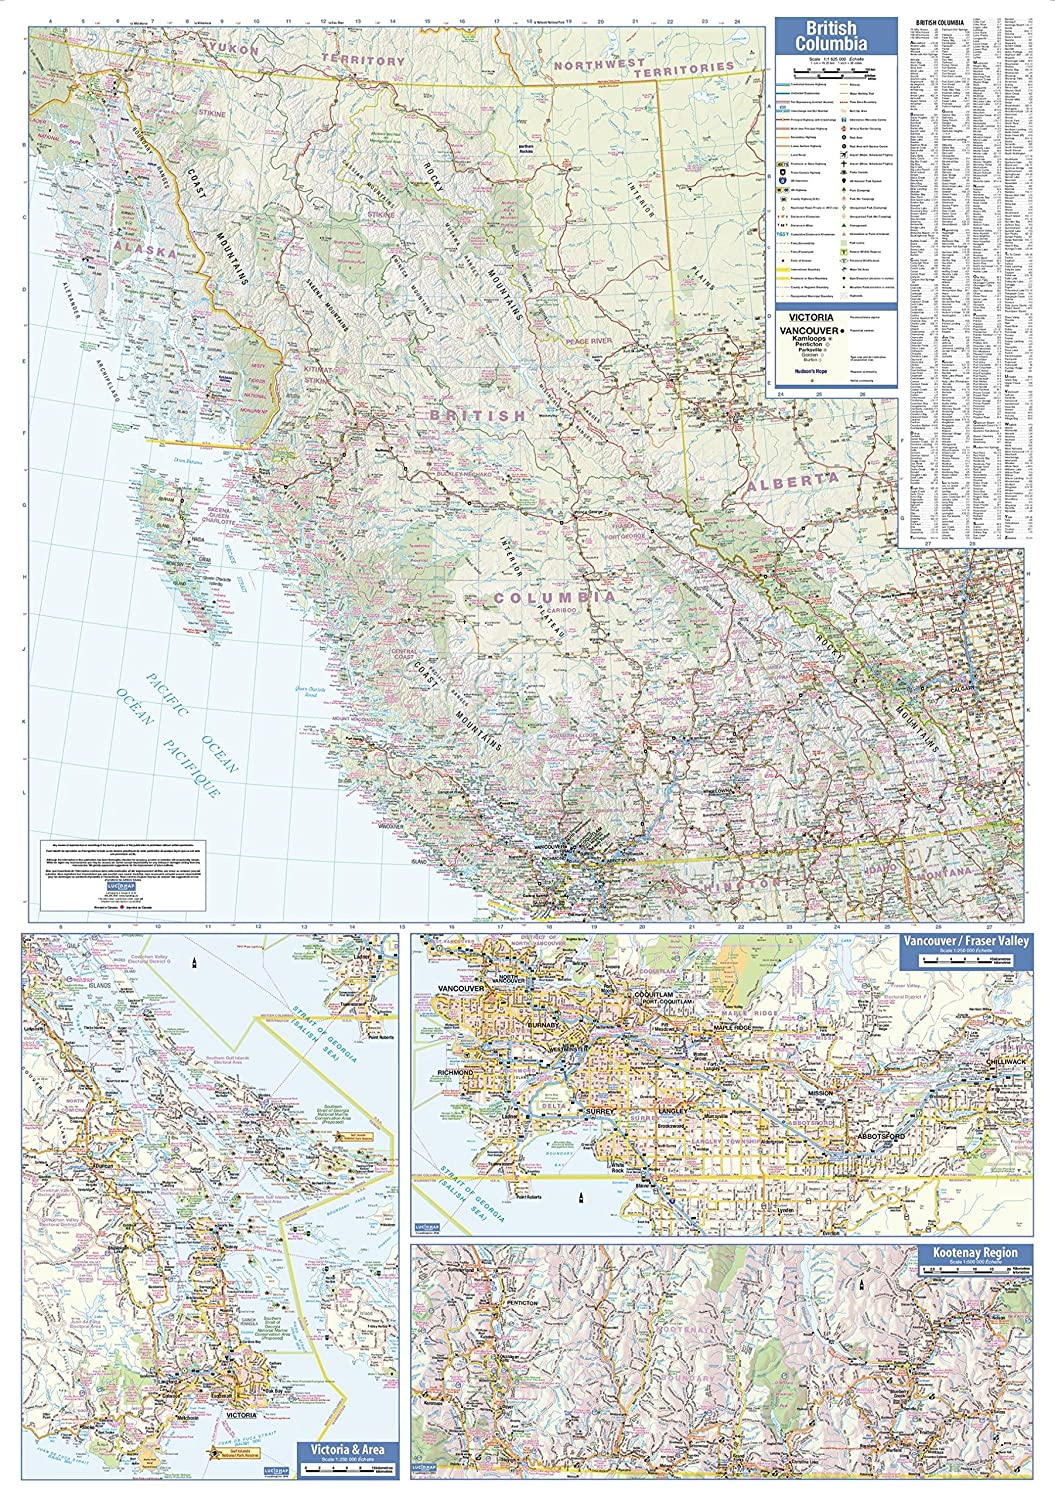 British Columbia Wall Map - Large - 38 x 54 Matte Plastic MapSherpa